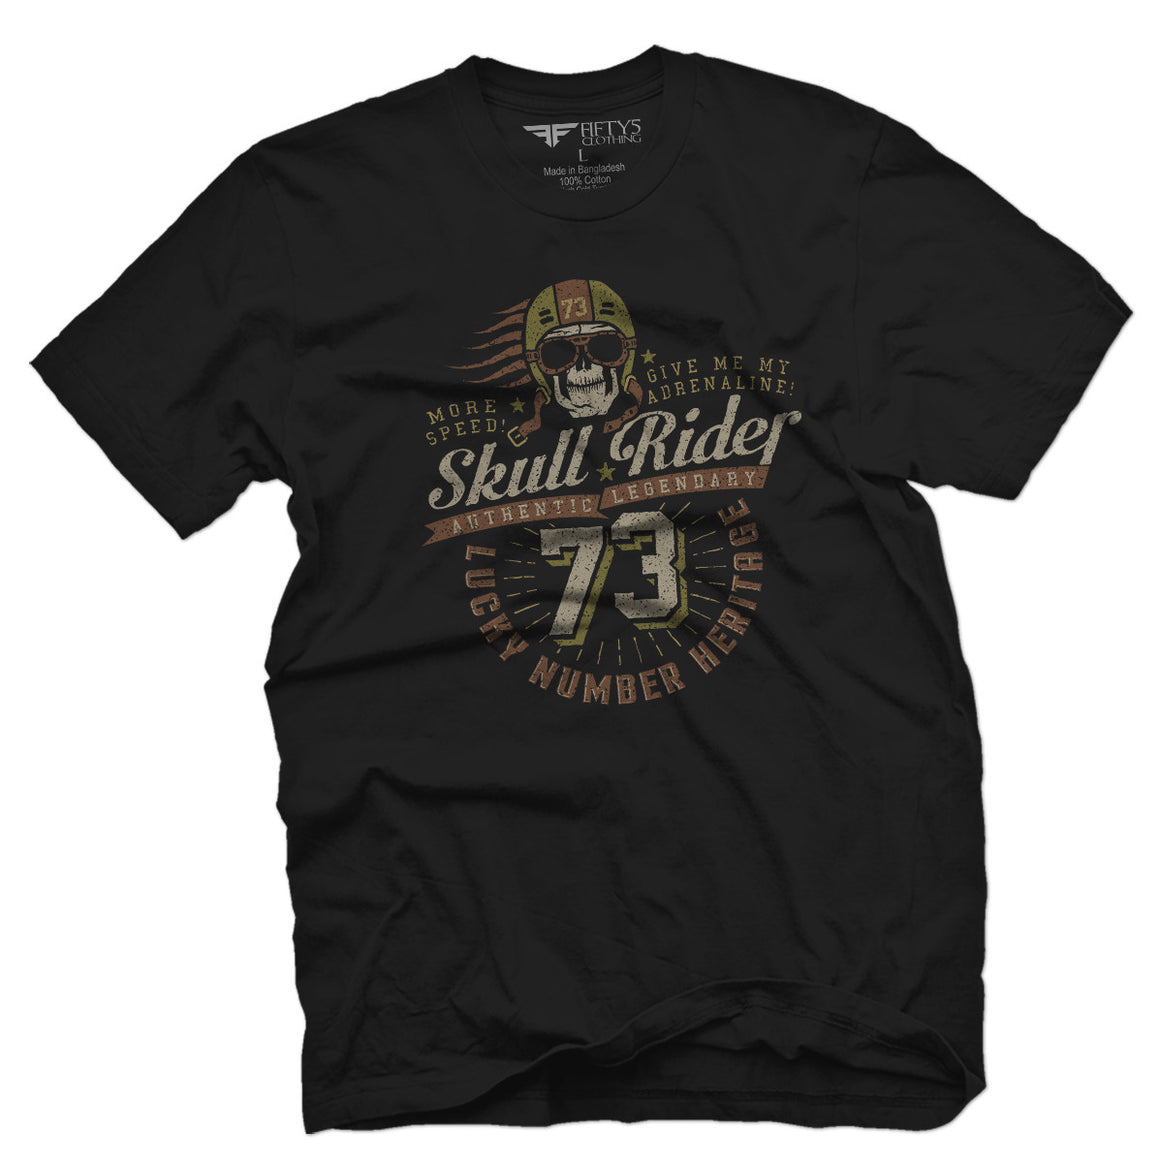 Fifty5 Clothing Skull Rider Men's T Shirt